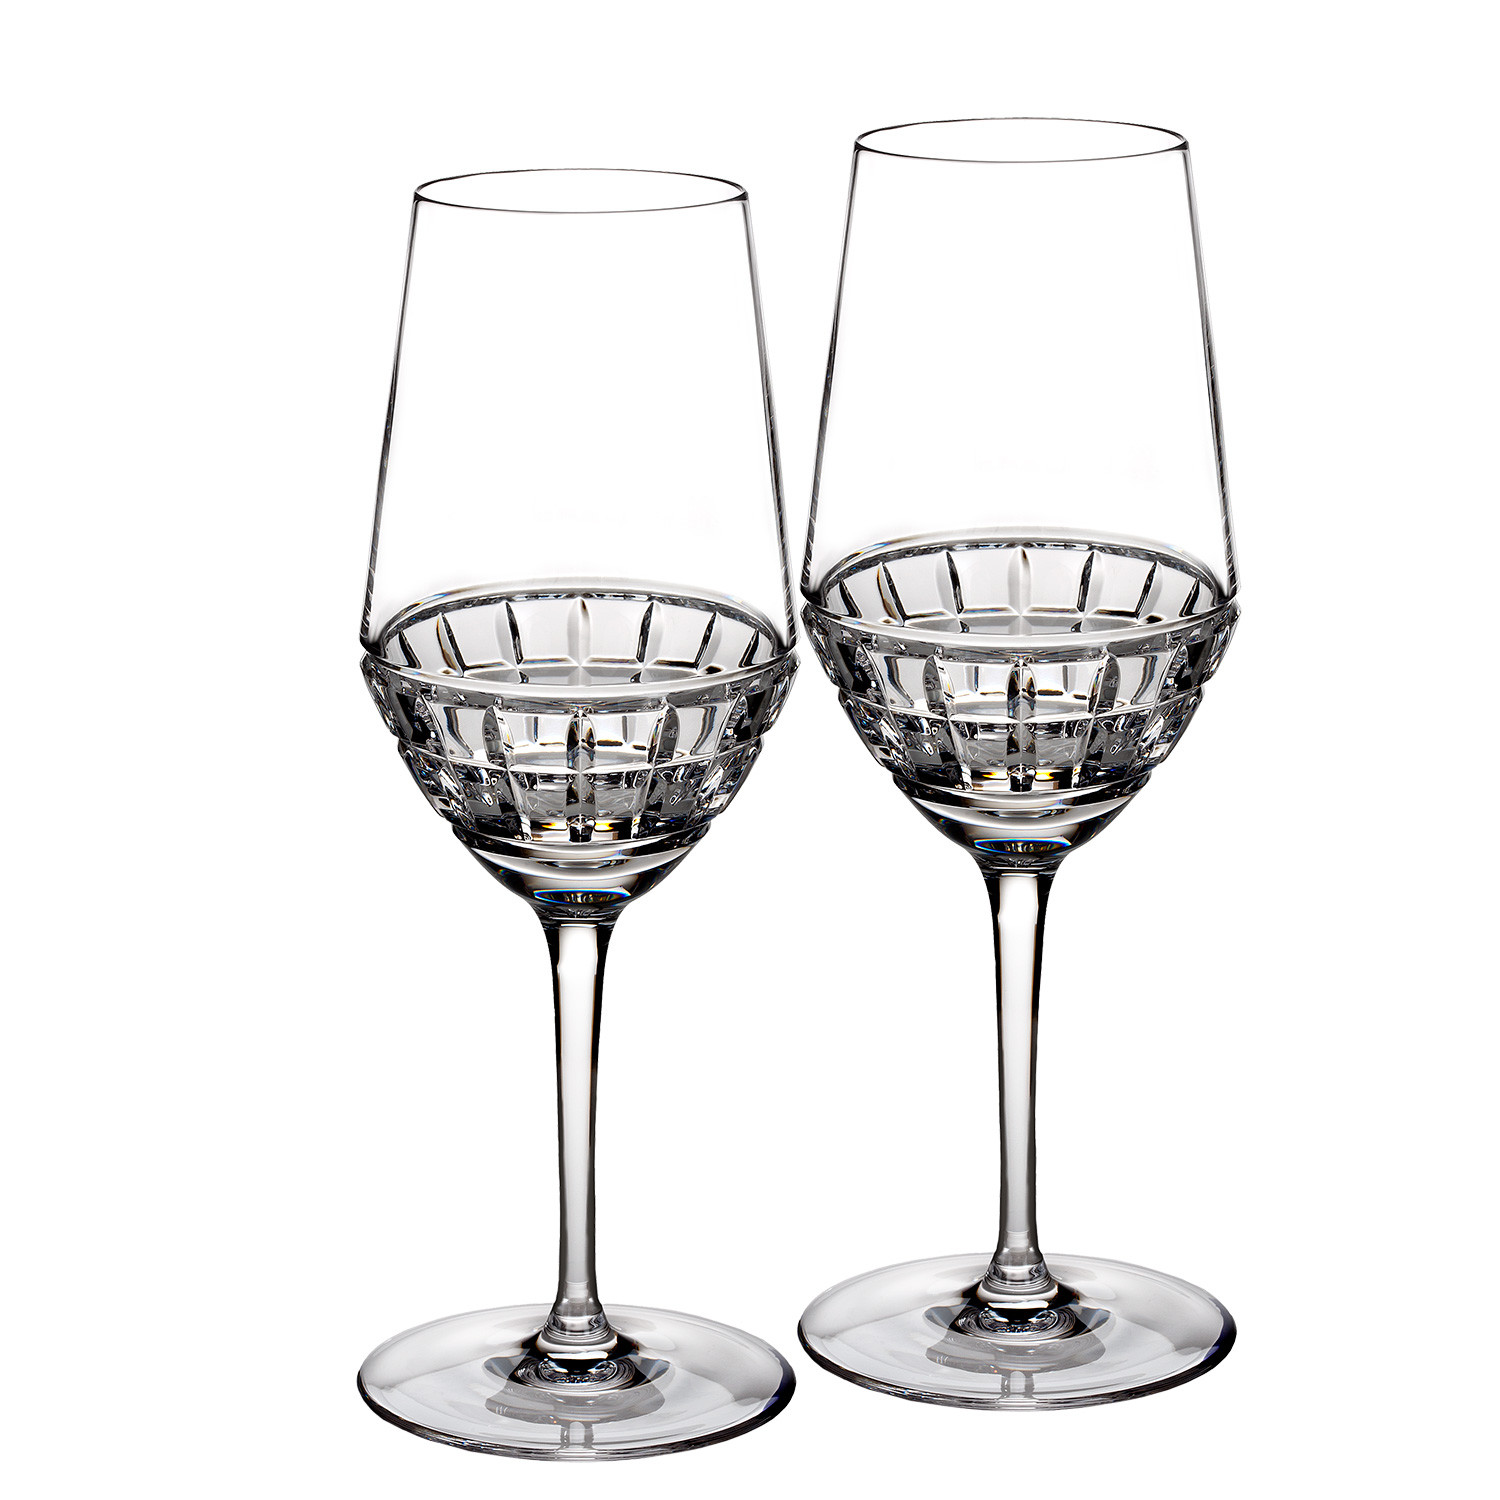 waterford crystal lismore vase 8 of stem barware william ashley china in set 2 wine glasses 24cm 295ml ac2b7 waterford